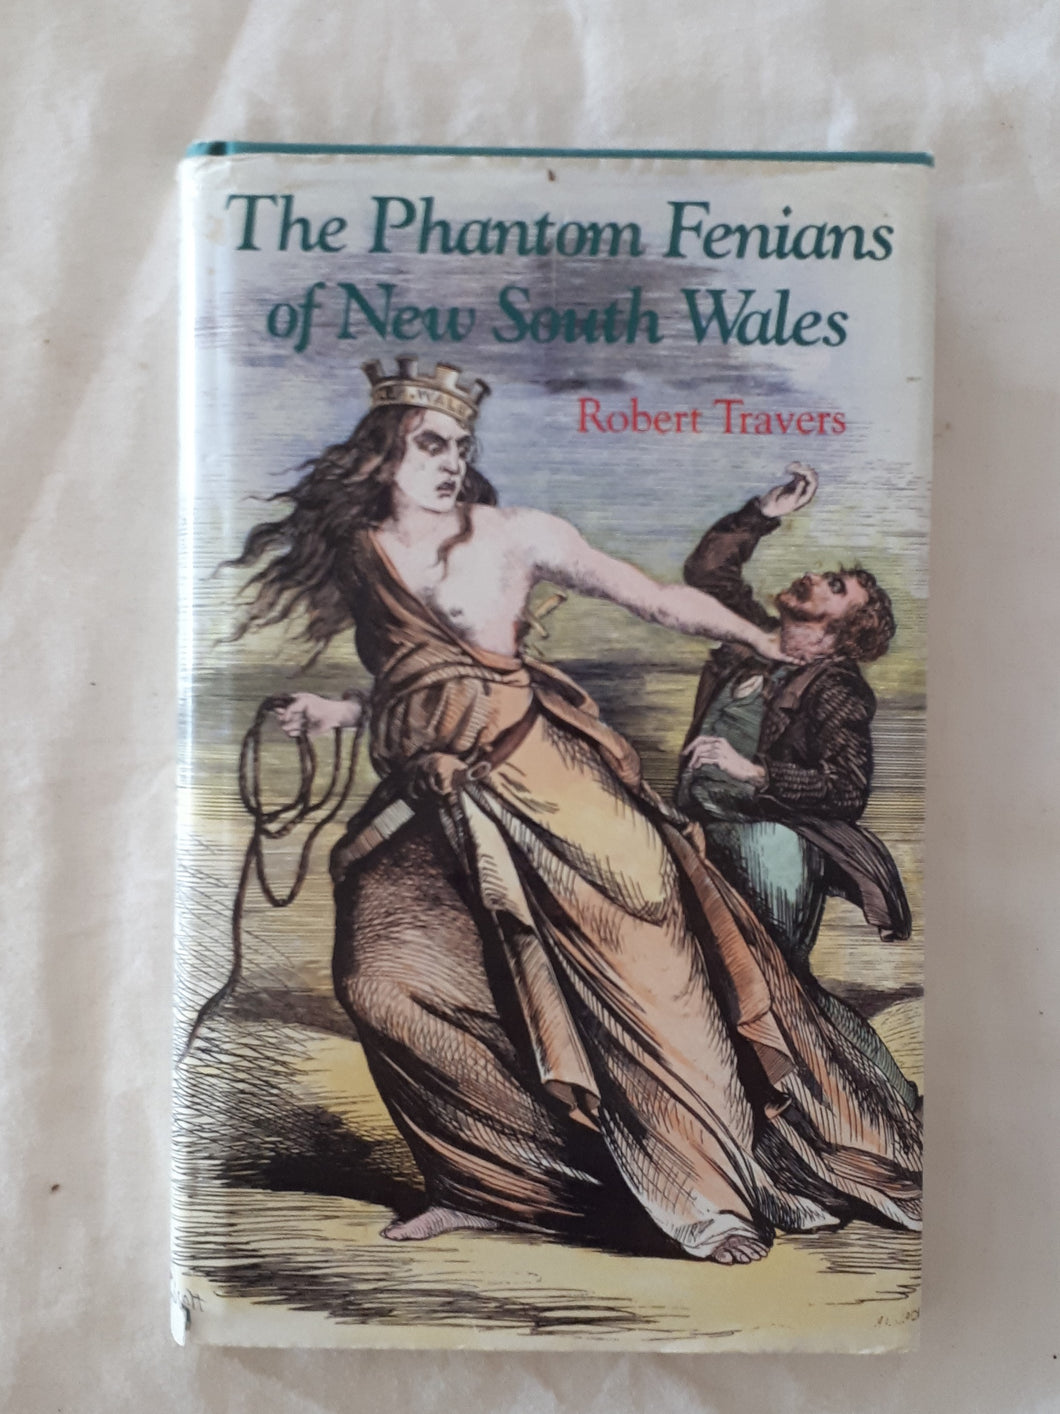 The Phantom Fenians of New South Wales by Robert Travers